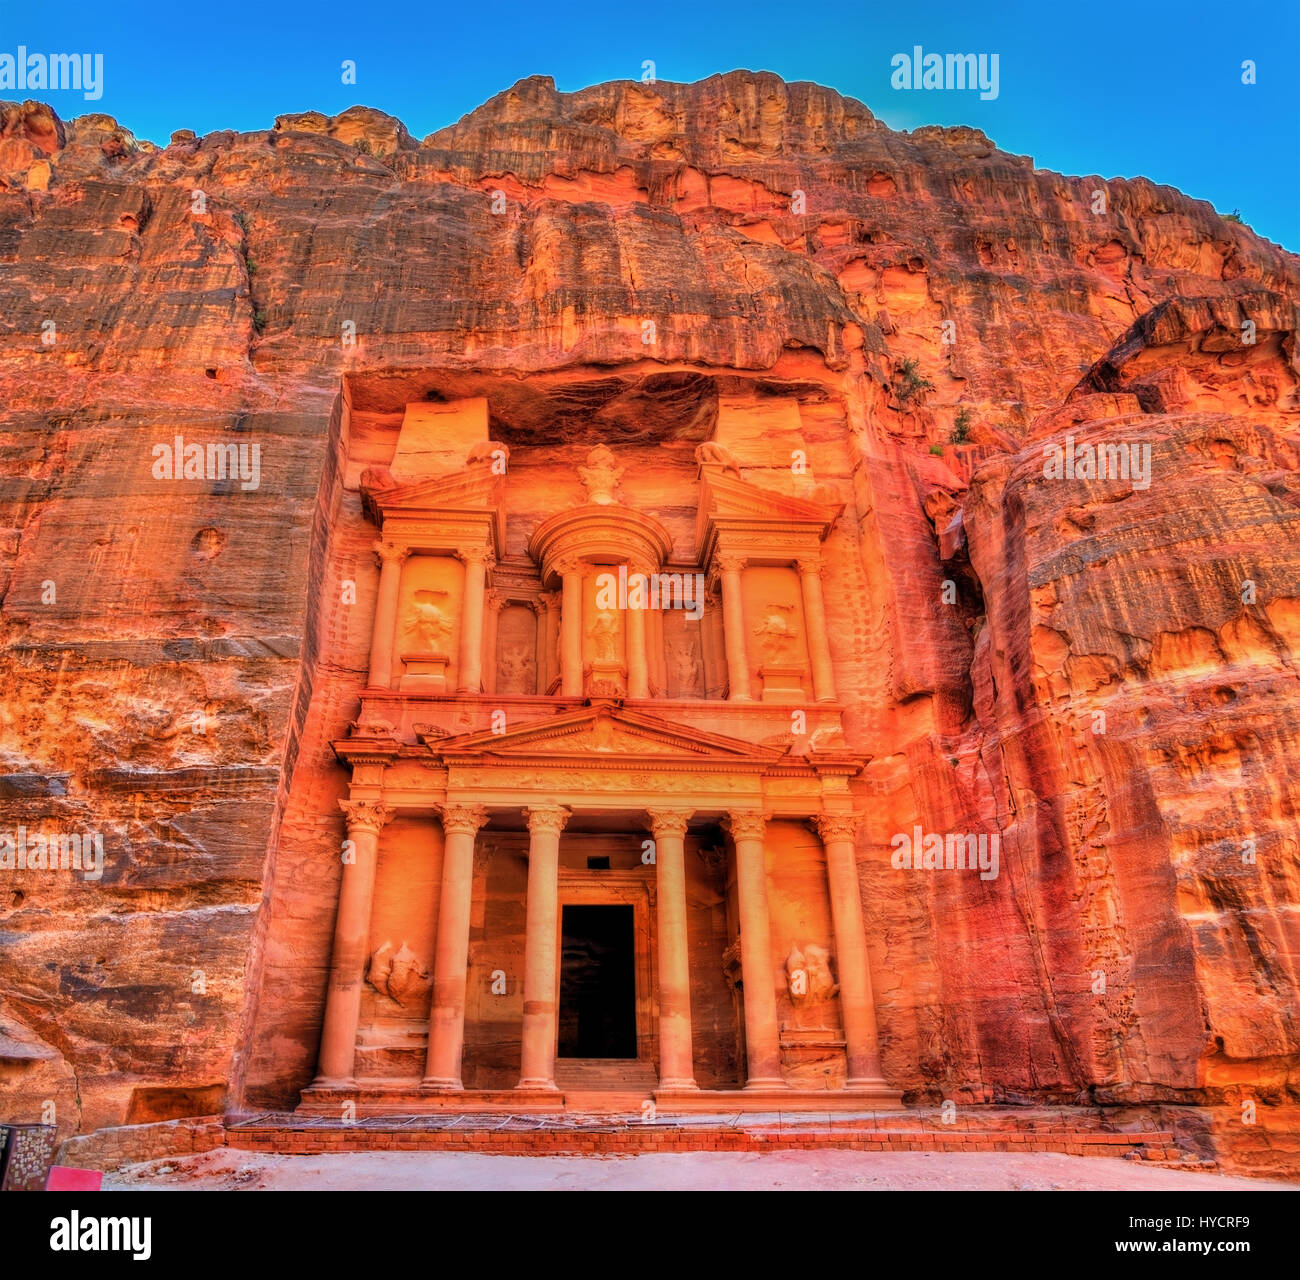 Al Khazneh temple in Petra. UNESCO world heritage site - Stock Image